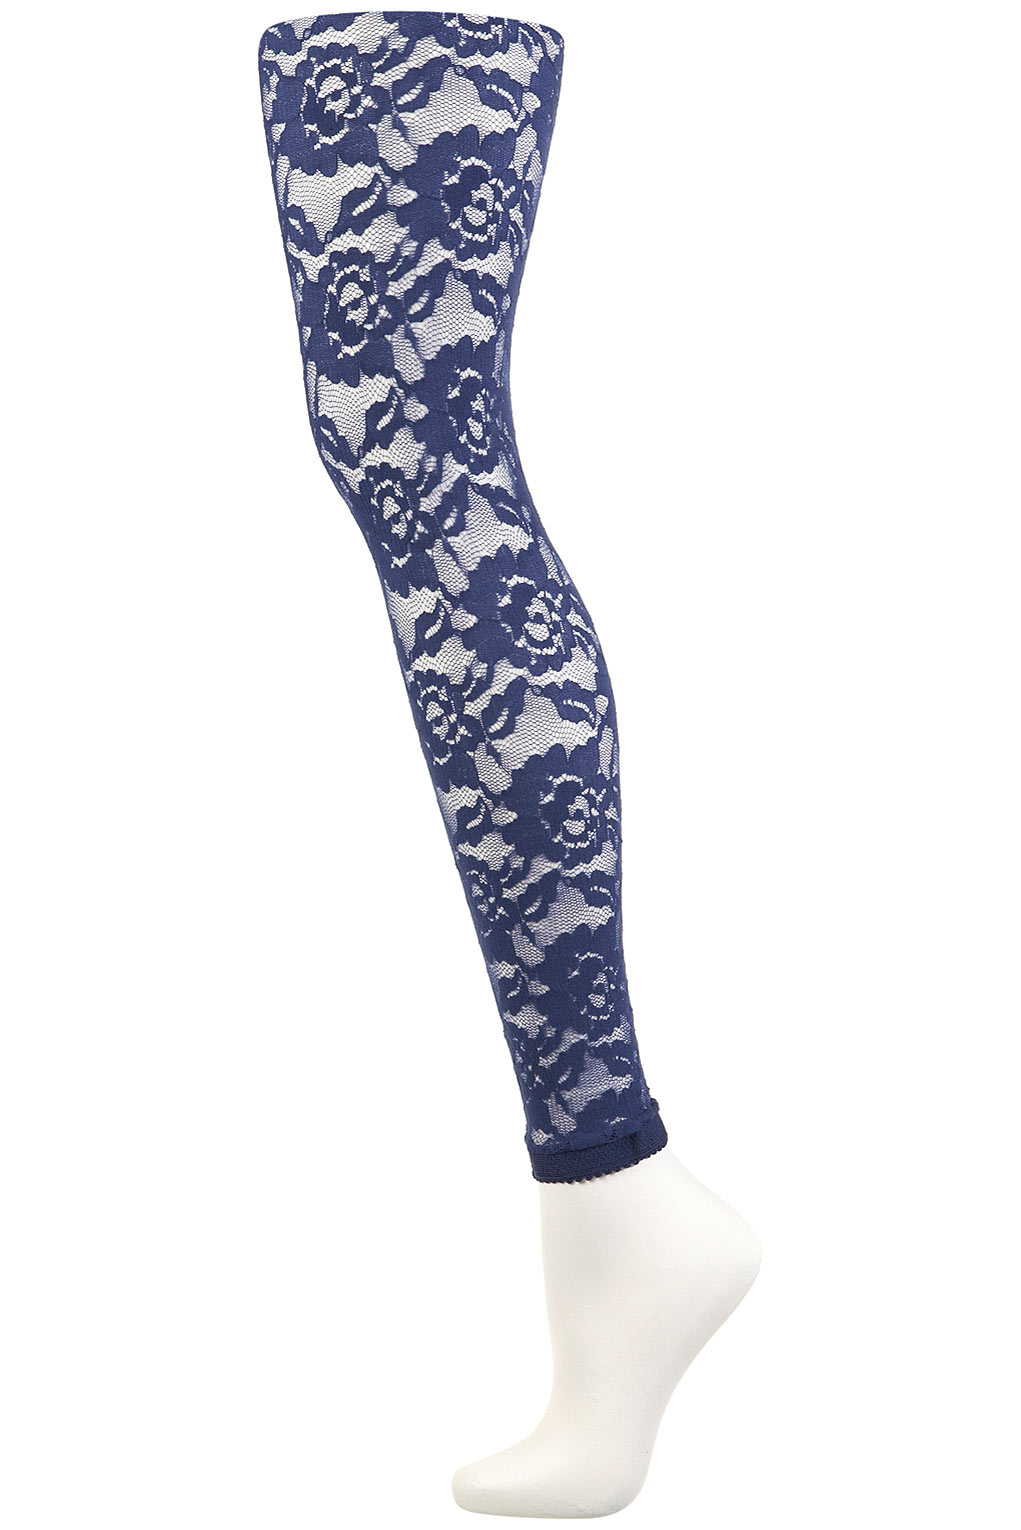 One of the most popular kinds of fashion tights, lace tights have enjoyed constant popularity since they first emerged on the catwalk. Thanks to their ornate and intriguing patterns, their pretty floral motifs and their ability to draw gazes to your legs and entrance admirers.